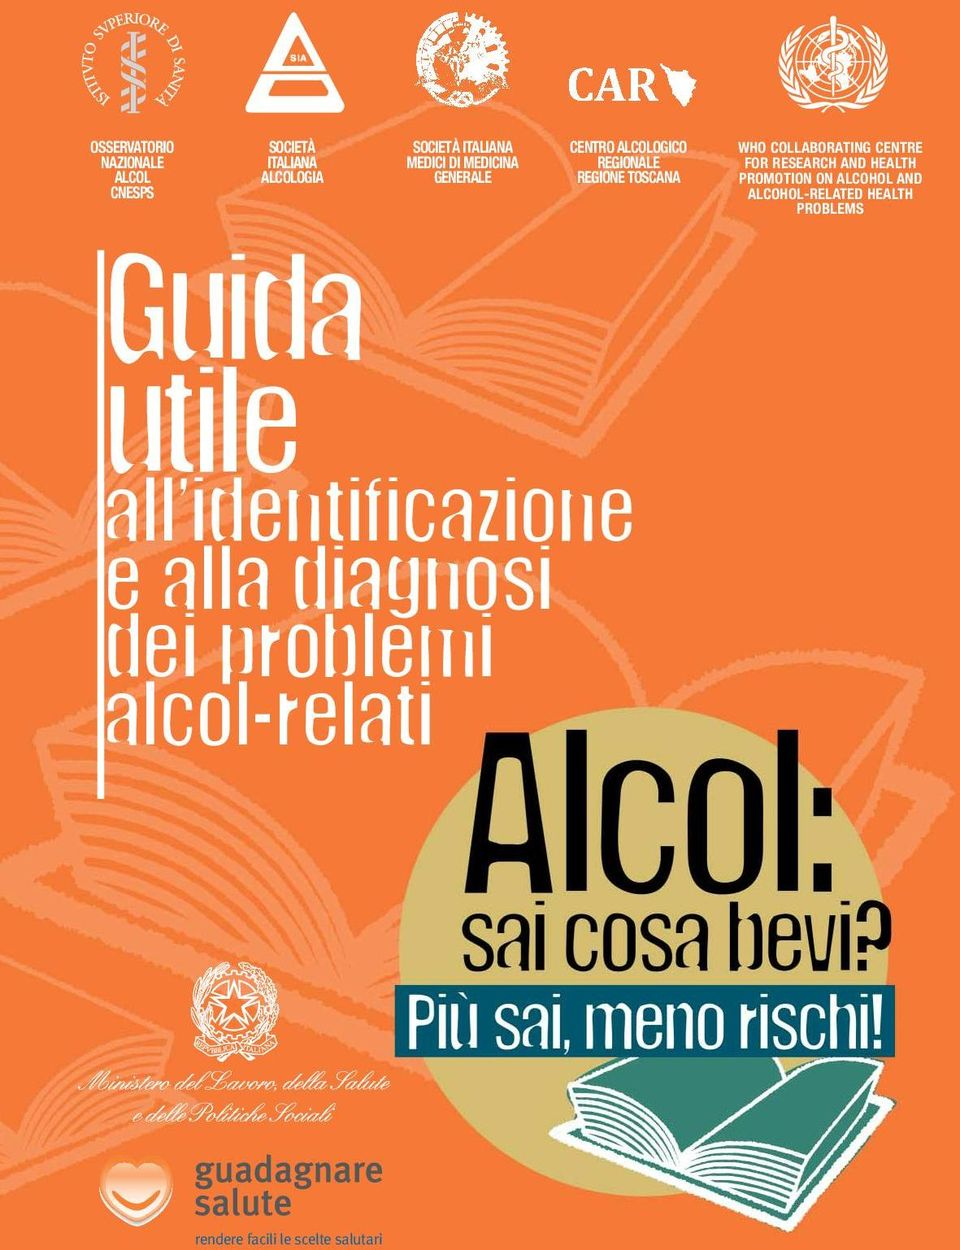 FOR RESEARCH AND HEALTH PROMOTION ON ALCOHOL AND ALCOHOL-RELATED HEALTH PROBLEMS Guida utile